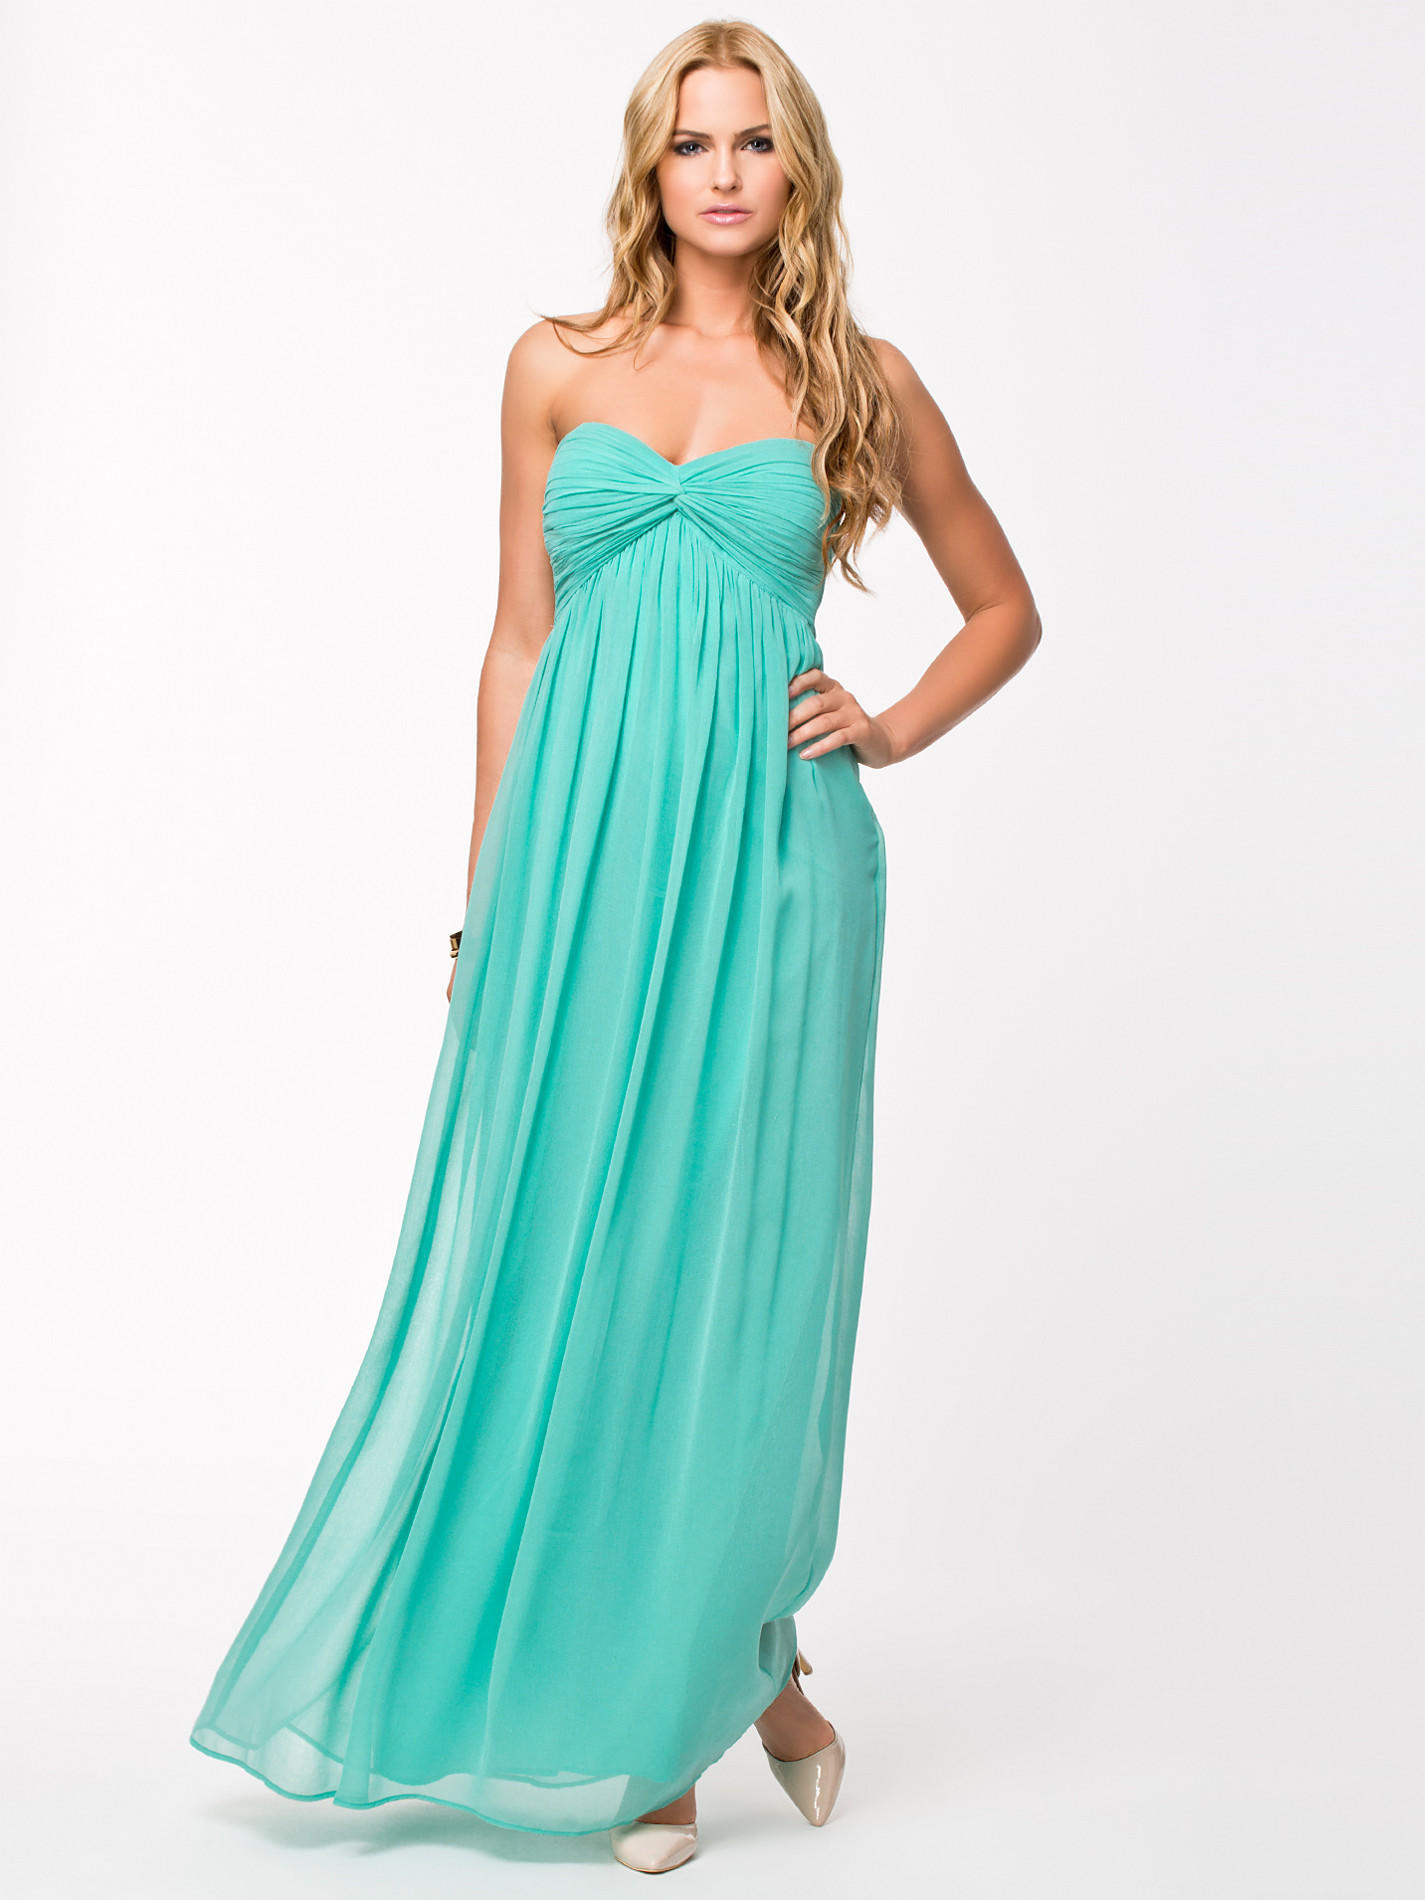 DREAMY DRESS - Turquoise Maxi dress by from nelly | Special